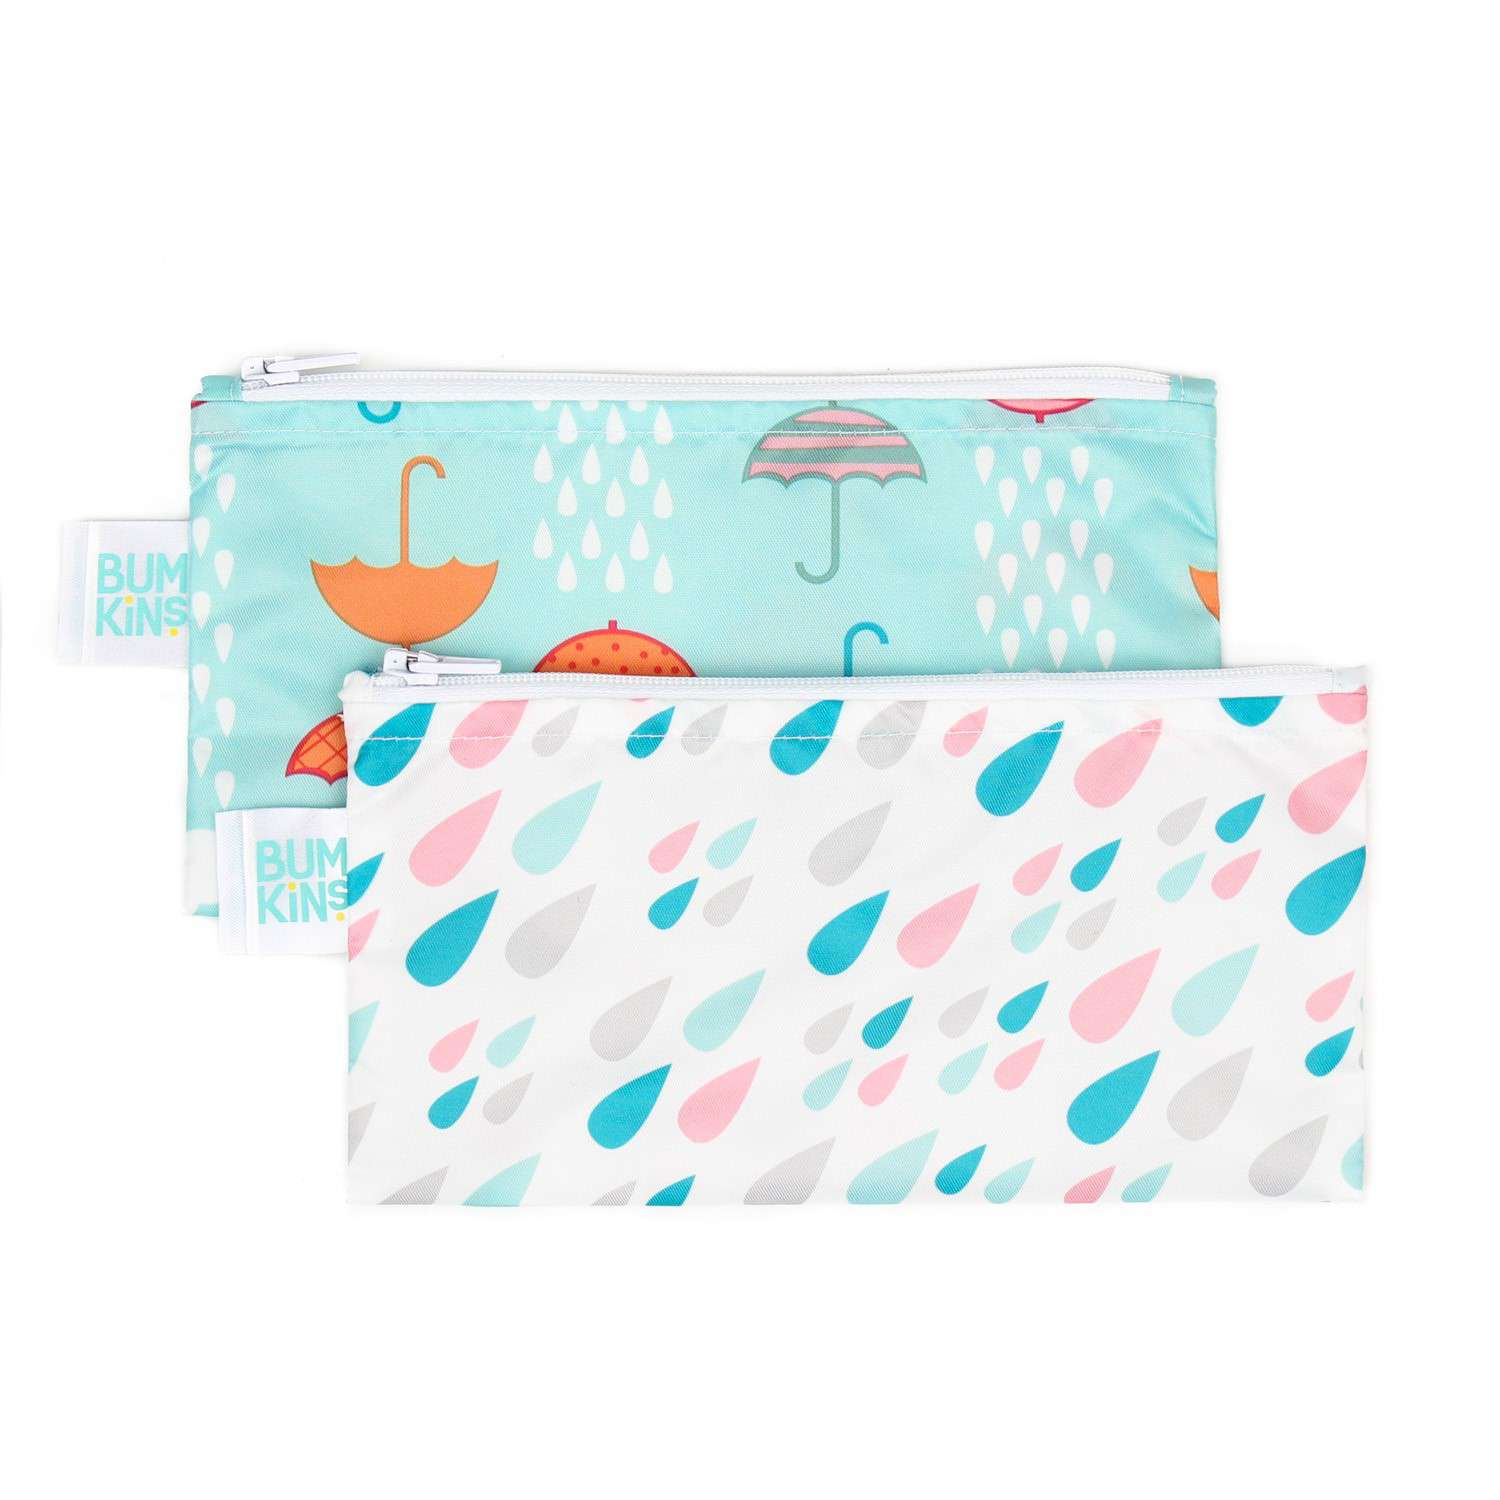 Bumkins Reusable Snack Bags, Small 2-Pack